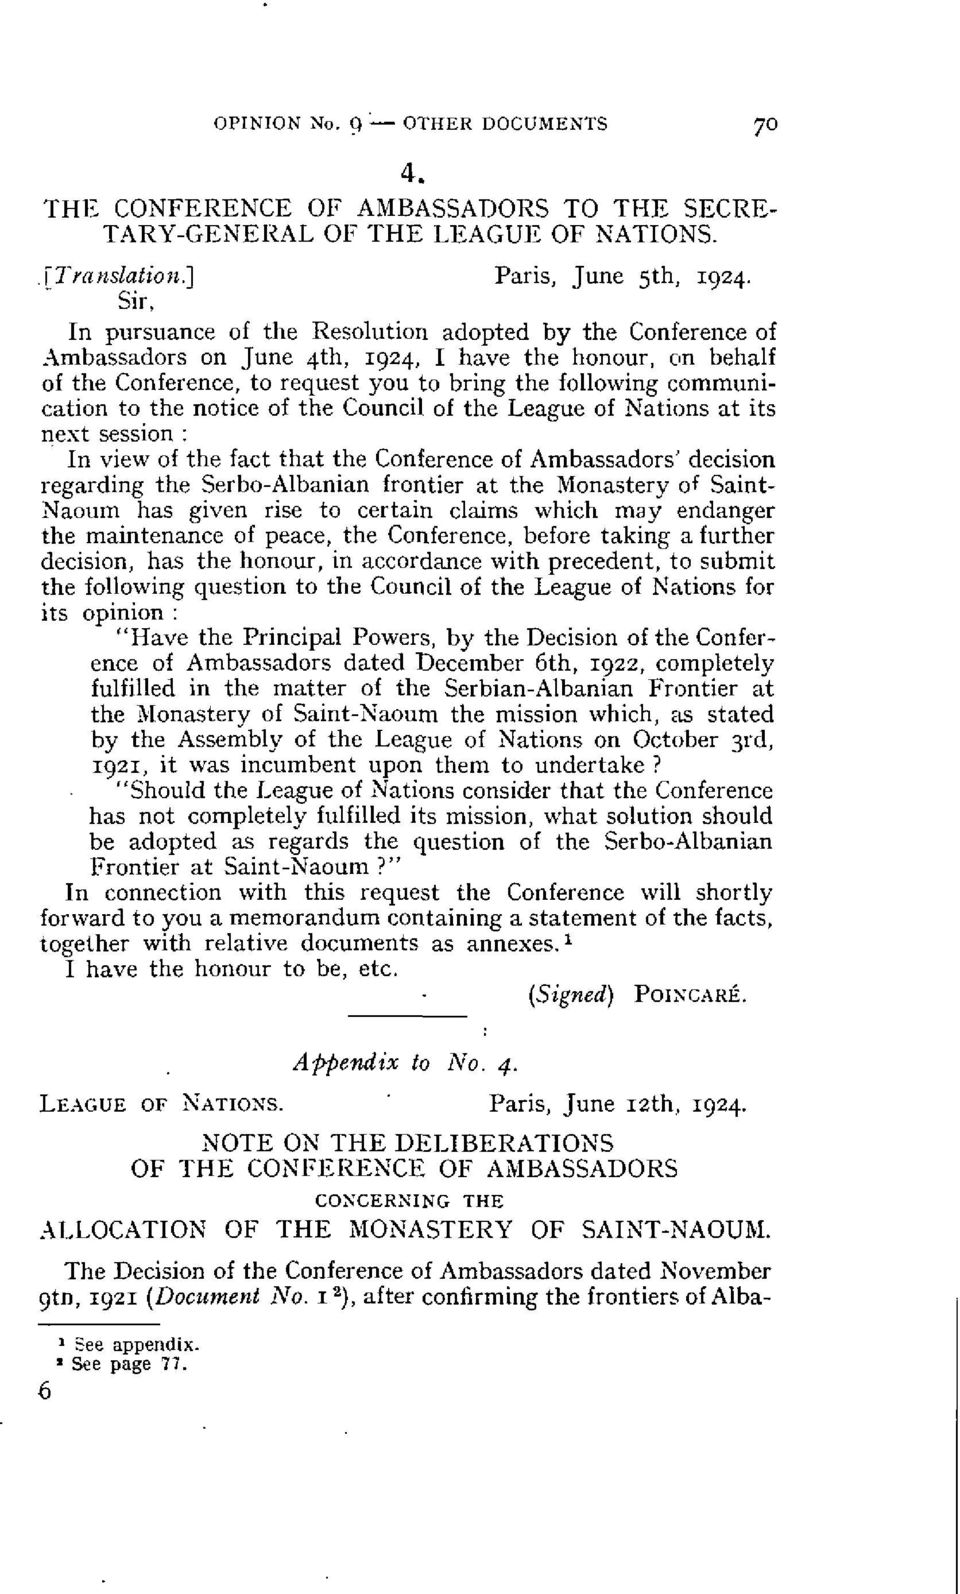 imbassadors on June 4th, 1924, 1 have the honour, on behalf of the Conference, to request you to bring the following communication to the notice of the Council of the League of Nations at its nest